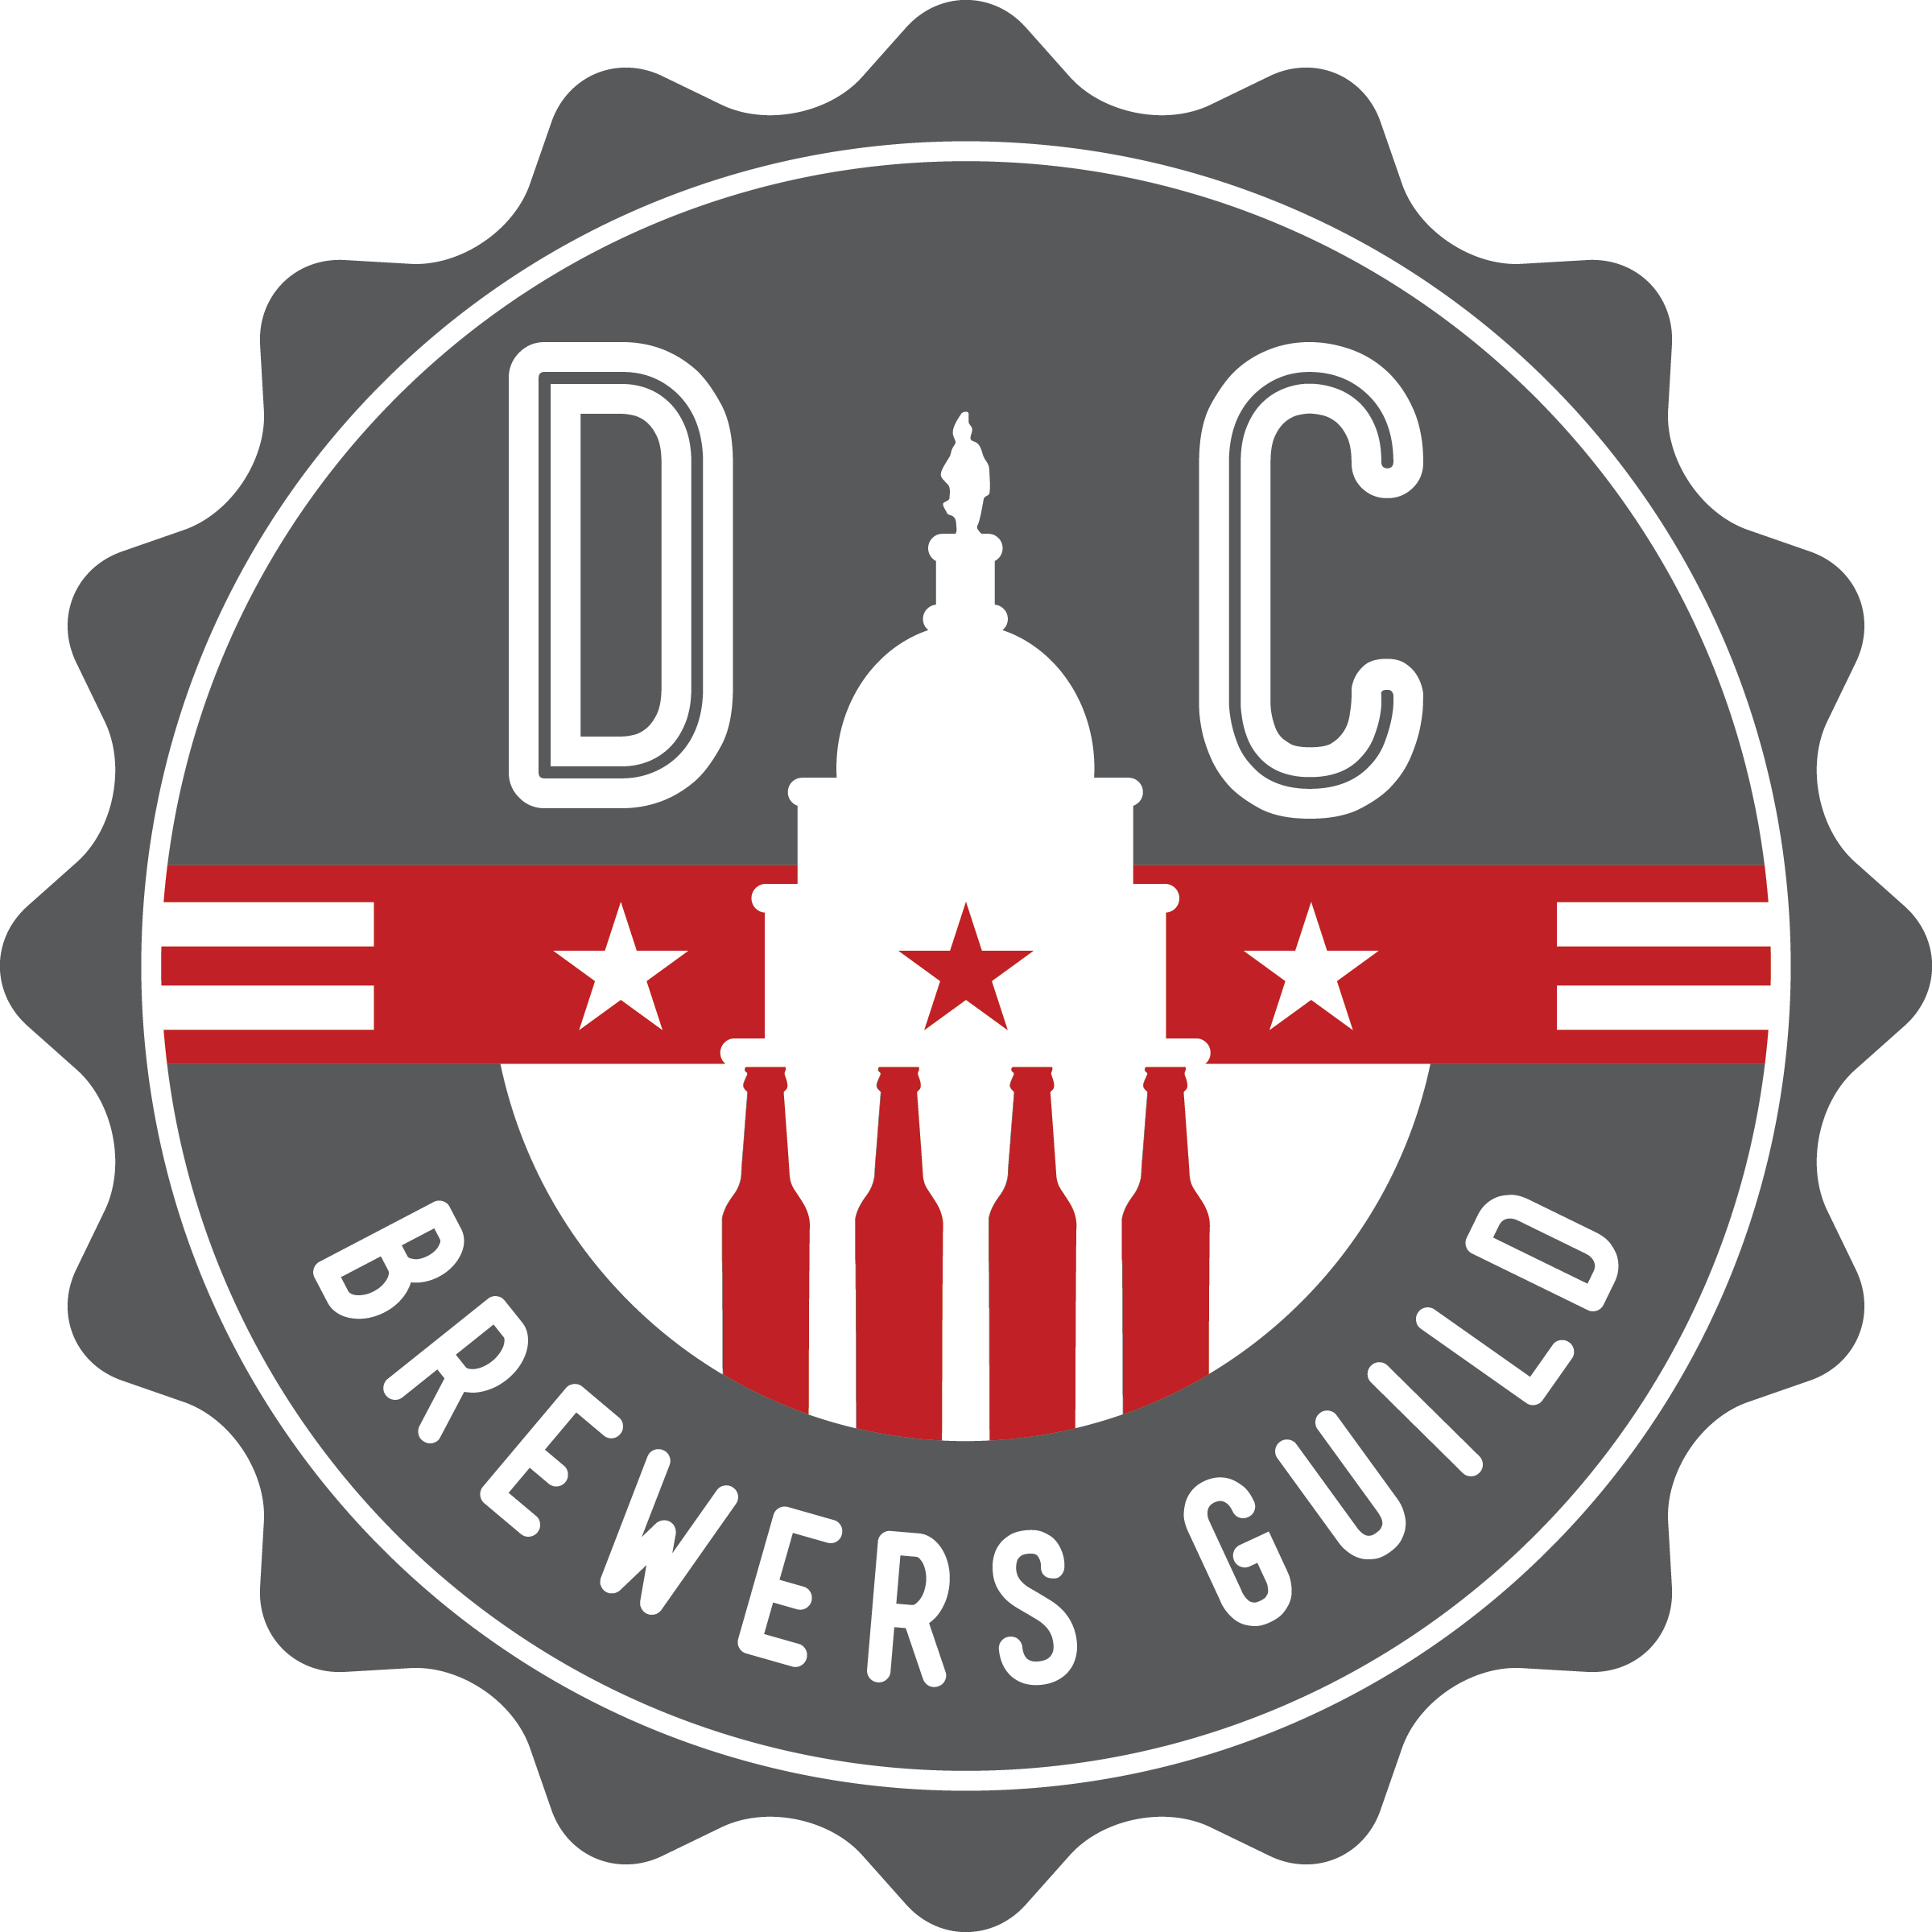 DC Brewers' Guild - In 2014, representatives from Washington, DC's craft breweries gathered together in the Heurich House Museum's Conservatory to create the DC Brewers Guild. 100 years earlier, Christian Heurich had met his brewery guild members in this same room to discuss impending Prohibition. The museum is proud of its role in the Guild's creation and its close partnerships with the District's modern craft breweries who are the torch-bearers of Heurich's legacy.The DC Brewers Guild exists to unify the Washington, D.C. brewing community by honoring D.C.'s brewing heritage, fostering community development and pride, educating consumers,promoting shared business interests, and encouraging sustainable growth.